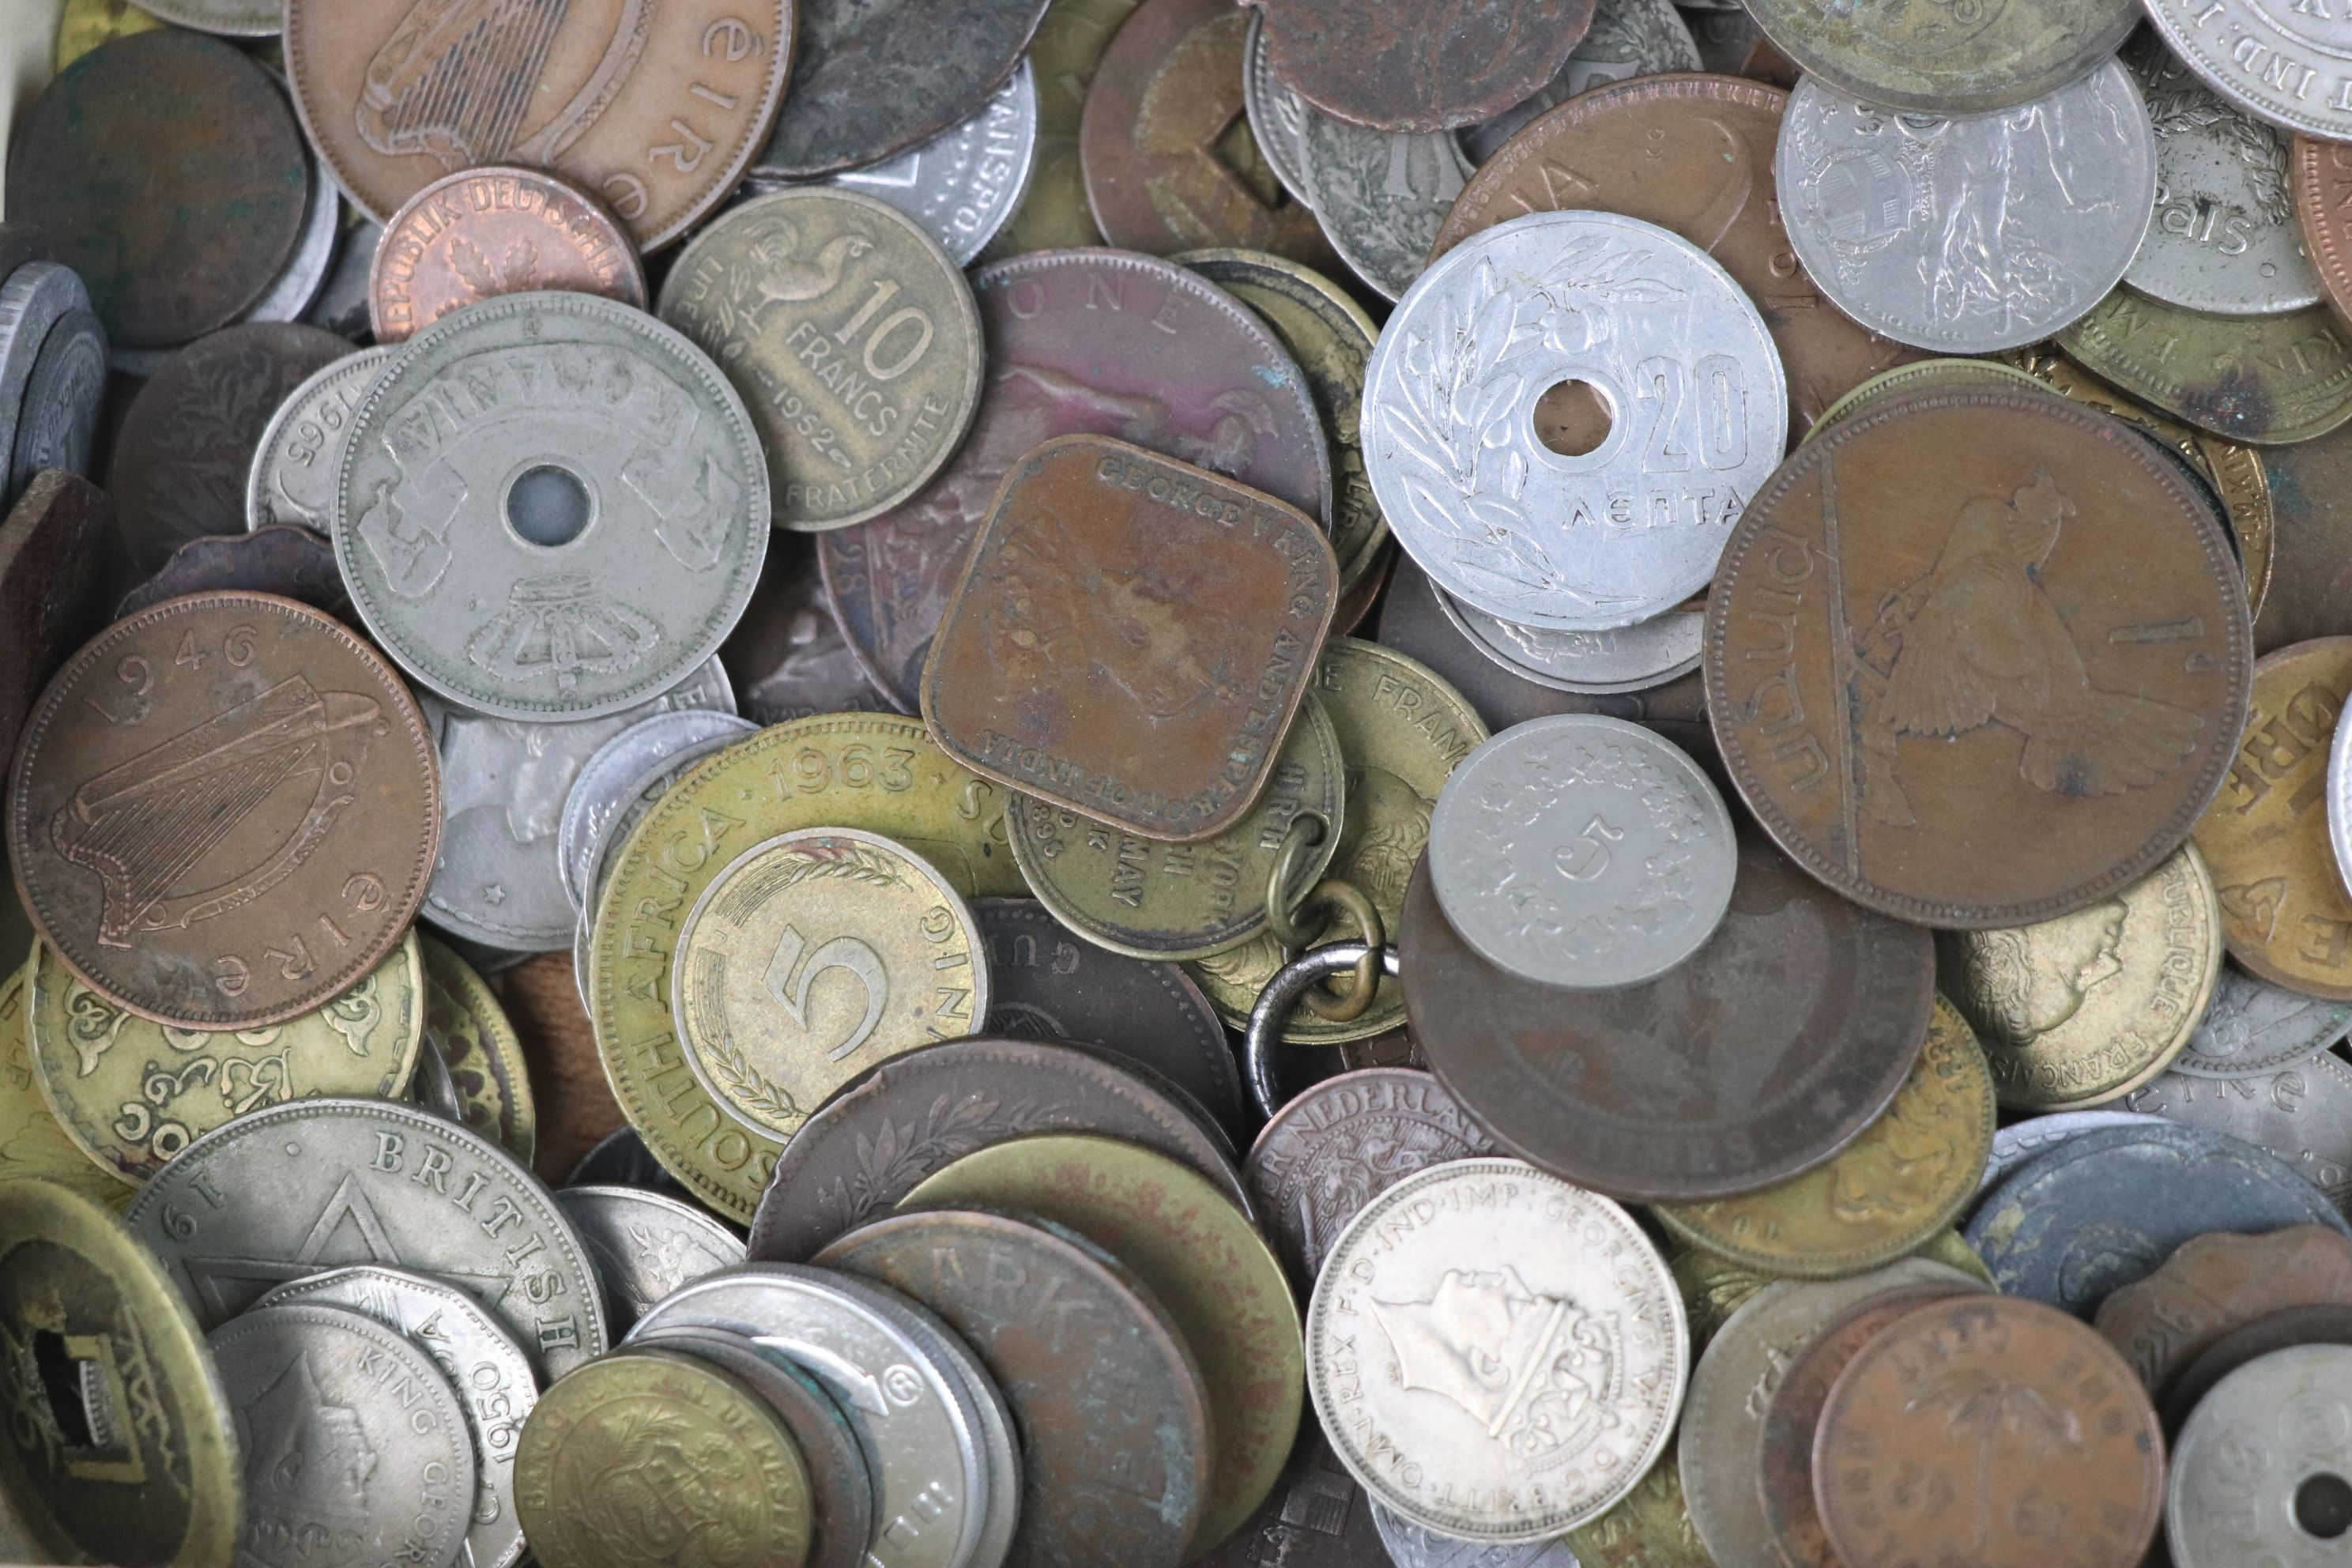 A collection of mixed 19th and 20th century British and world coins. - Image 4 of 7